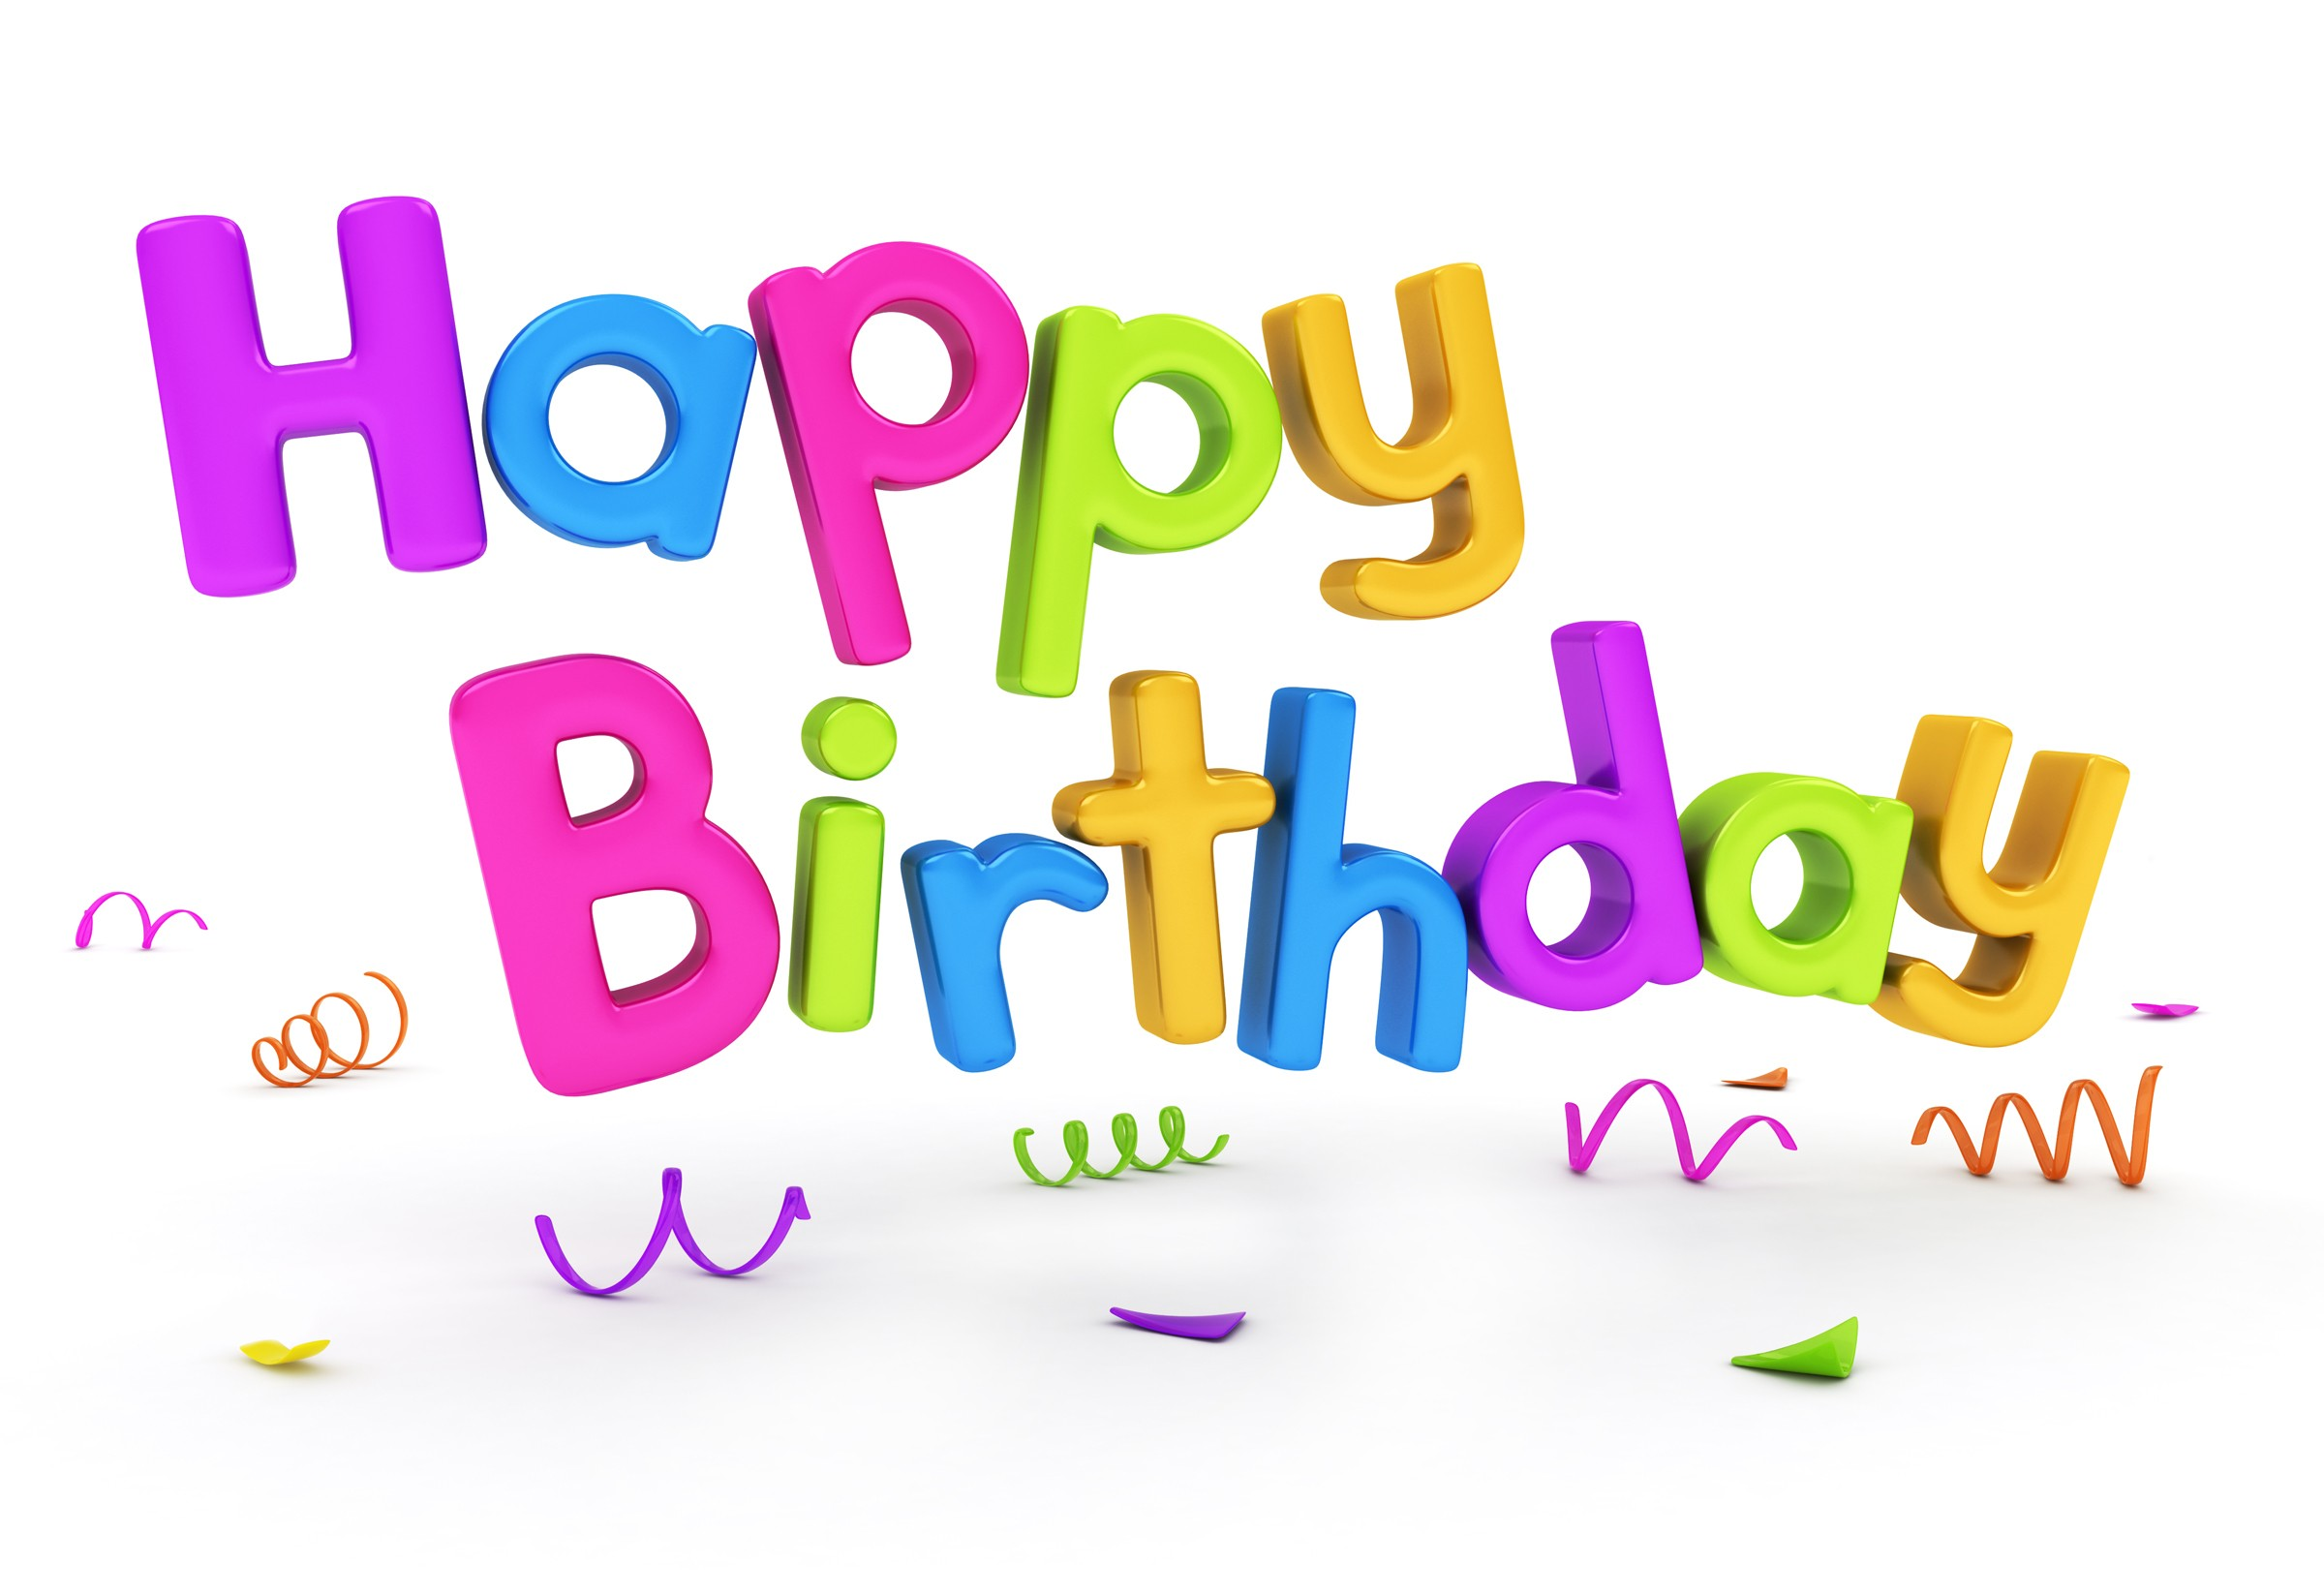 Happy birthday wishes clipart clipart kid